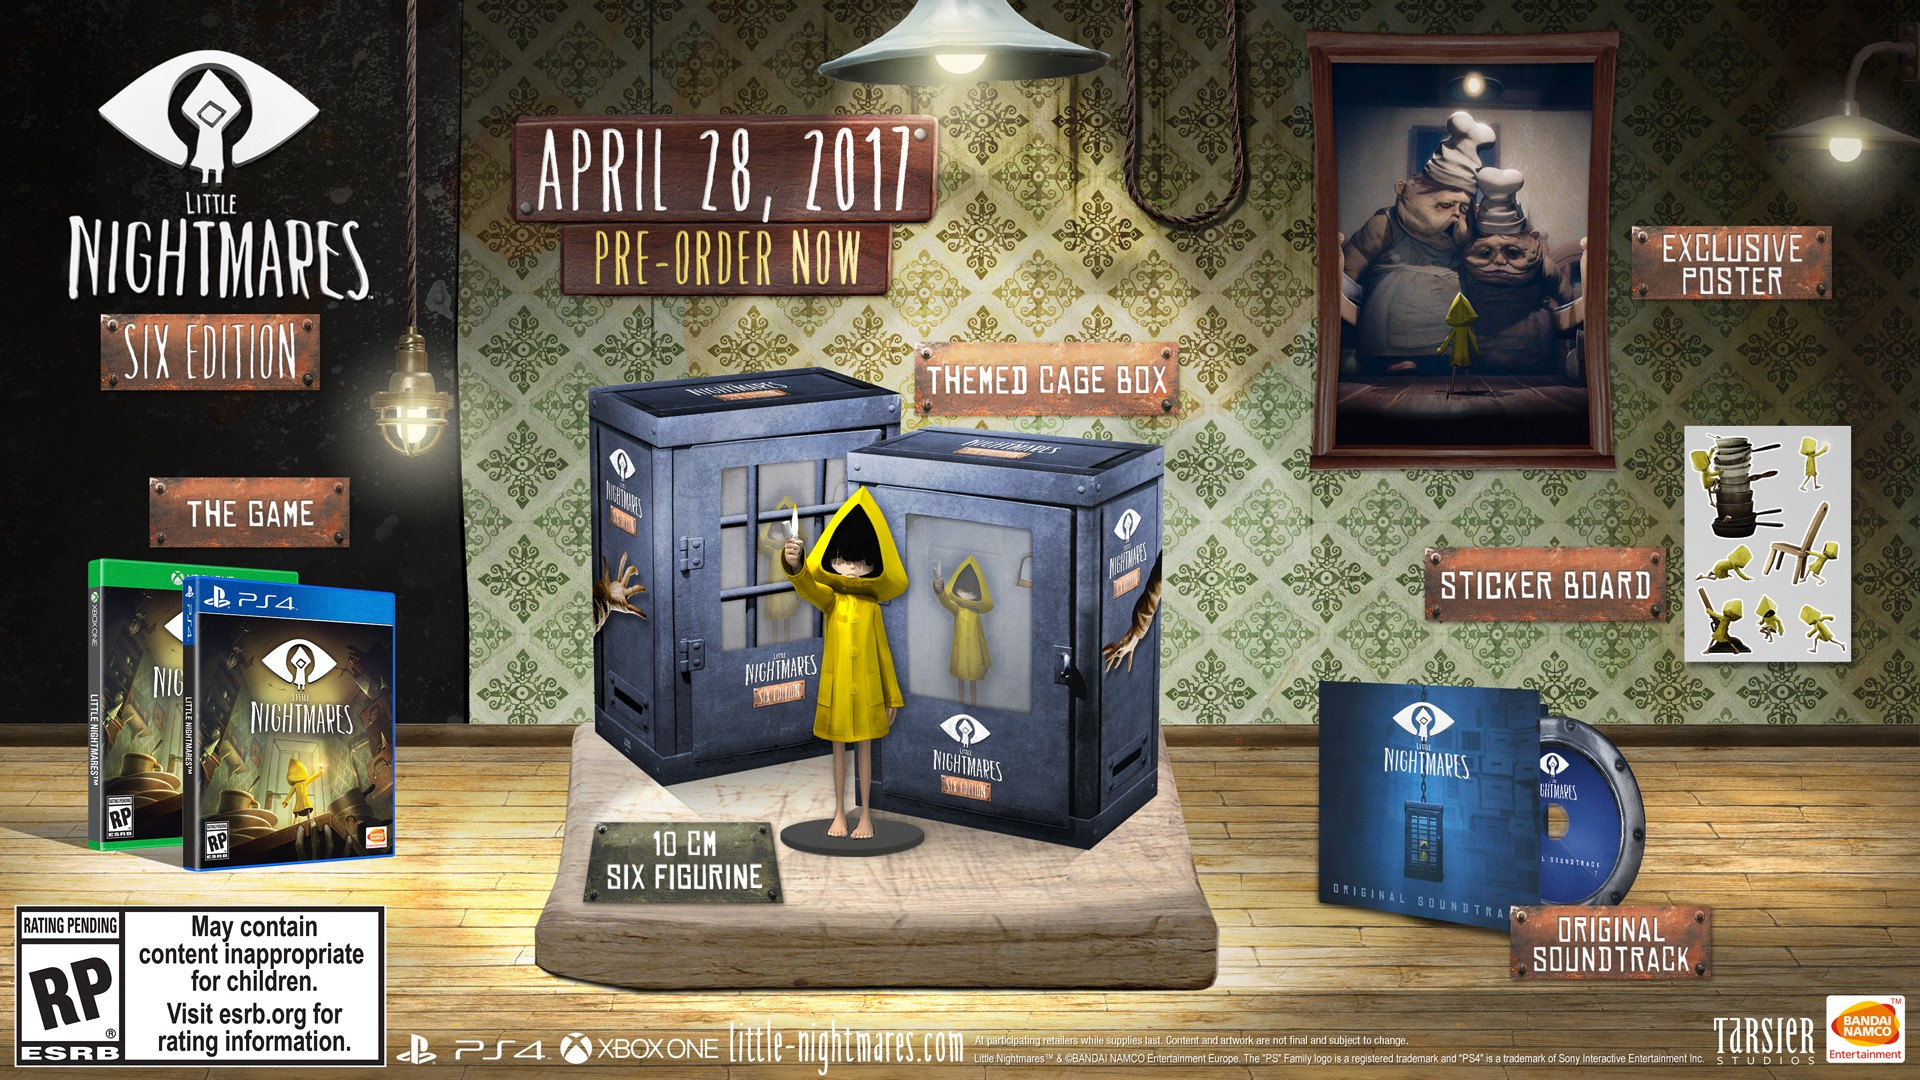 Little Nightmares will haunt your dreams this April